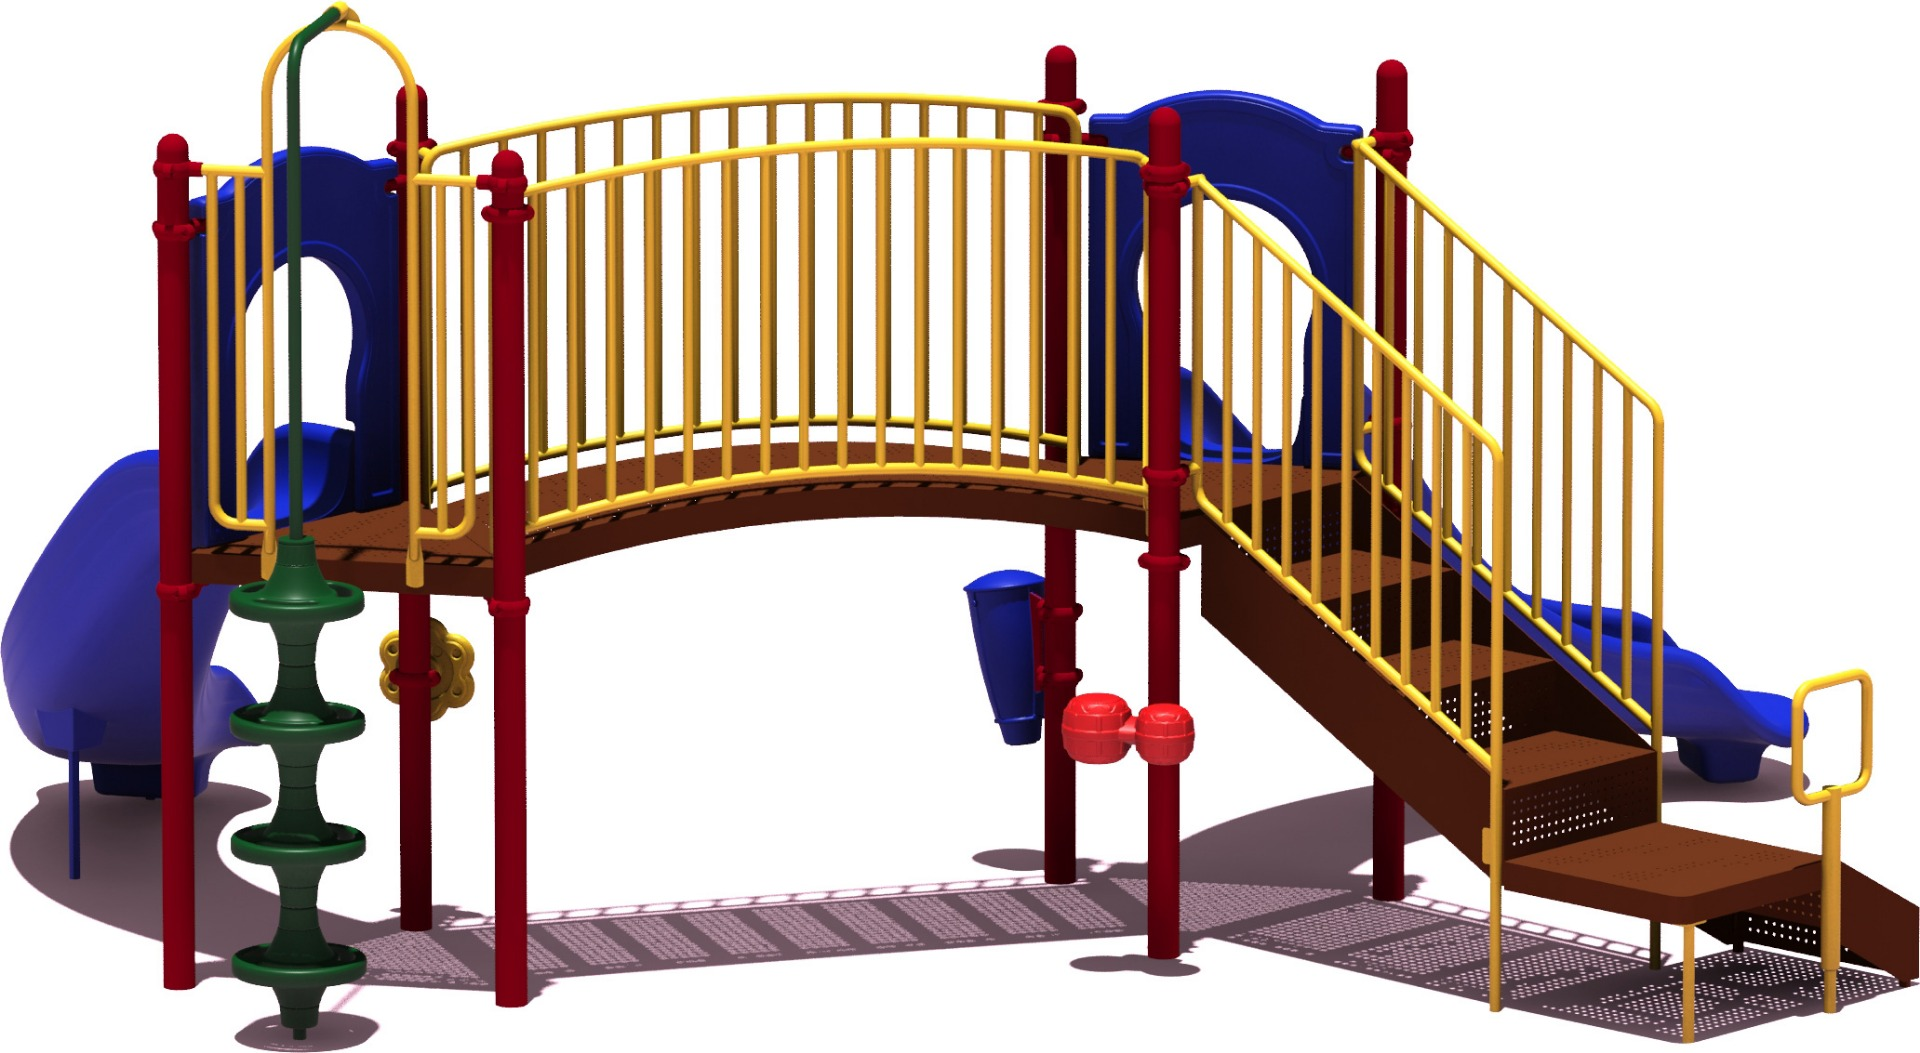 Slugger Play Structure - Primary Color Scheme - back View - Commercial Playground Equipment